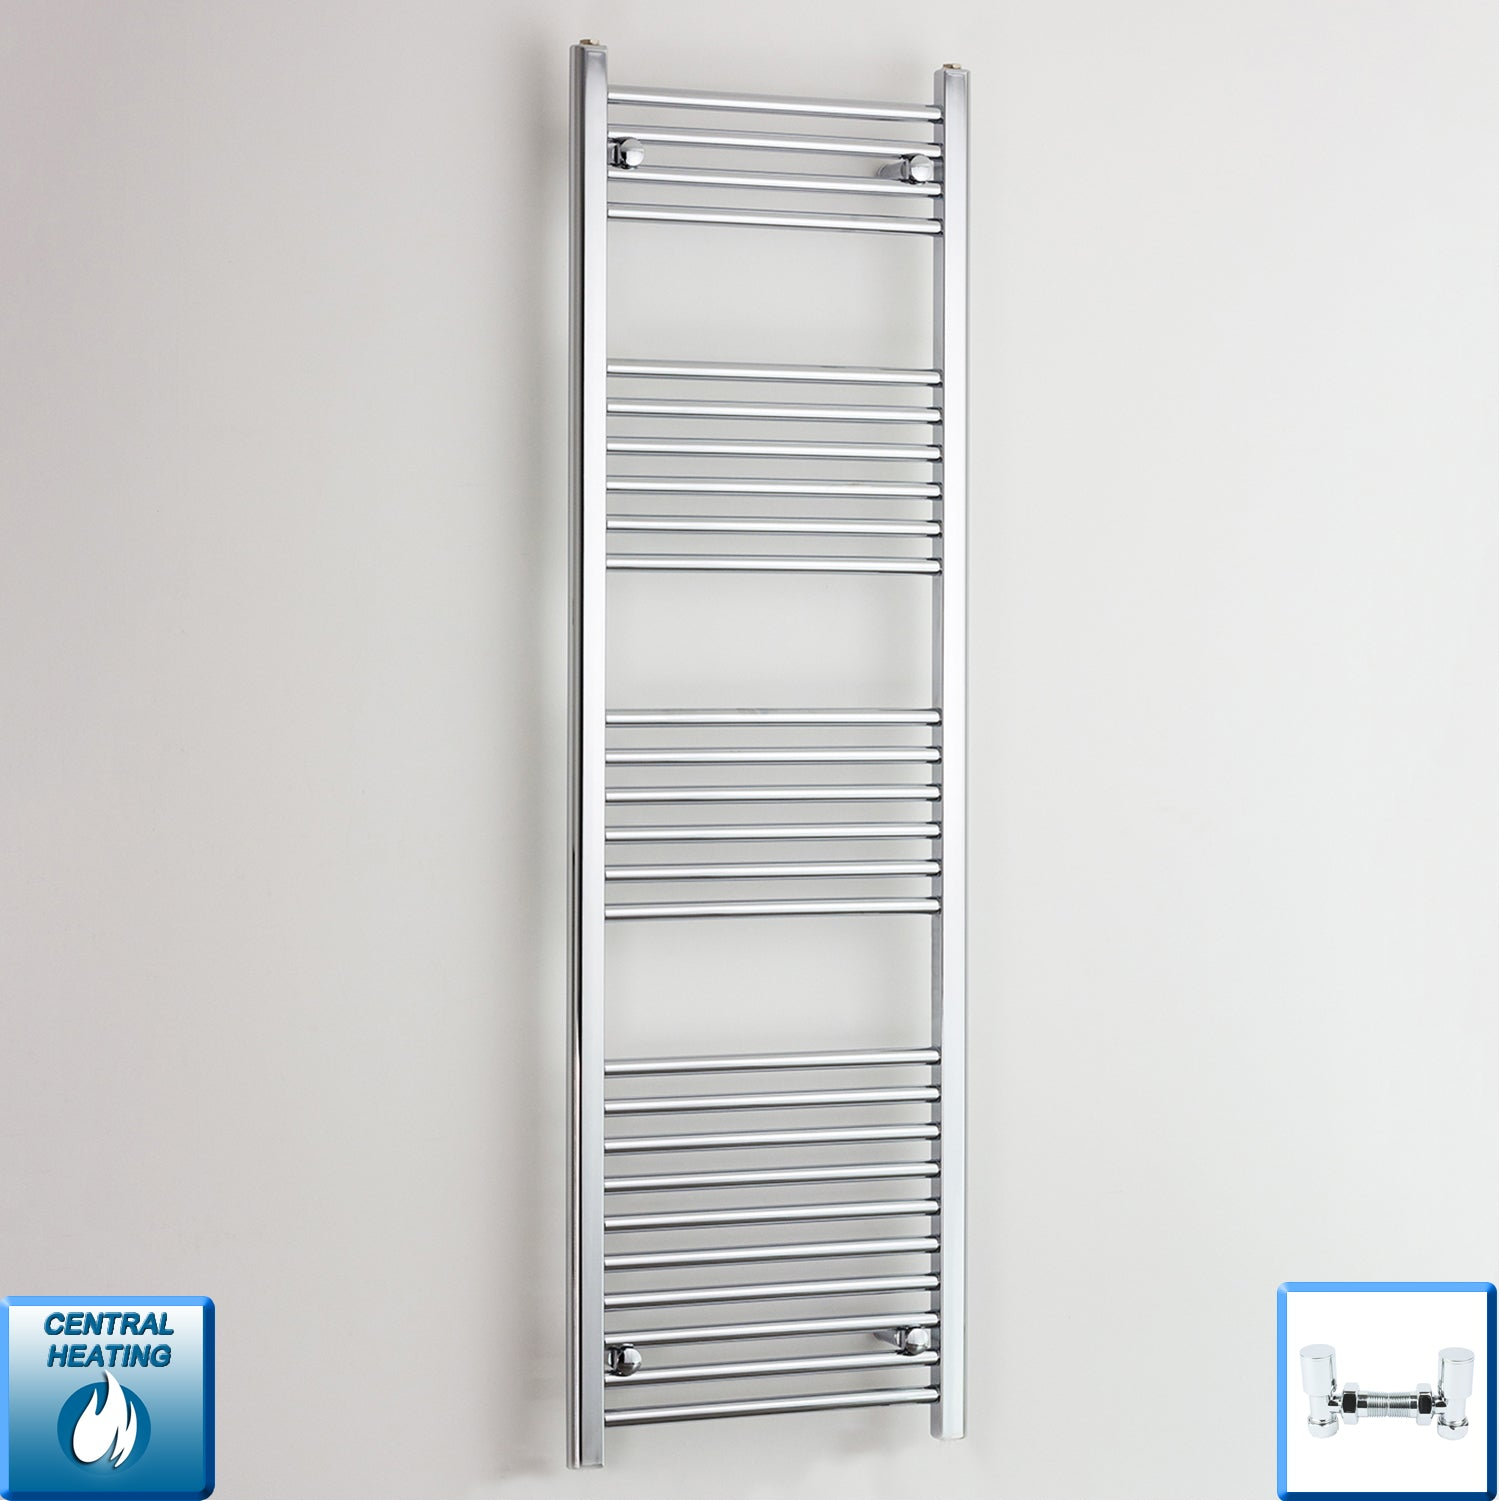 400mm Wide 1600mm High Curved Chrome Heated Towel Rail Radiator HTR,With Angled Valve